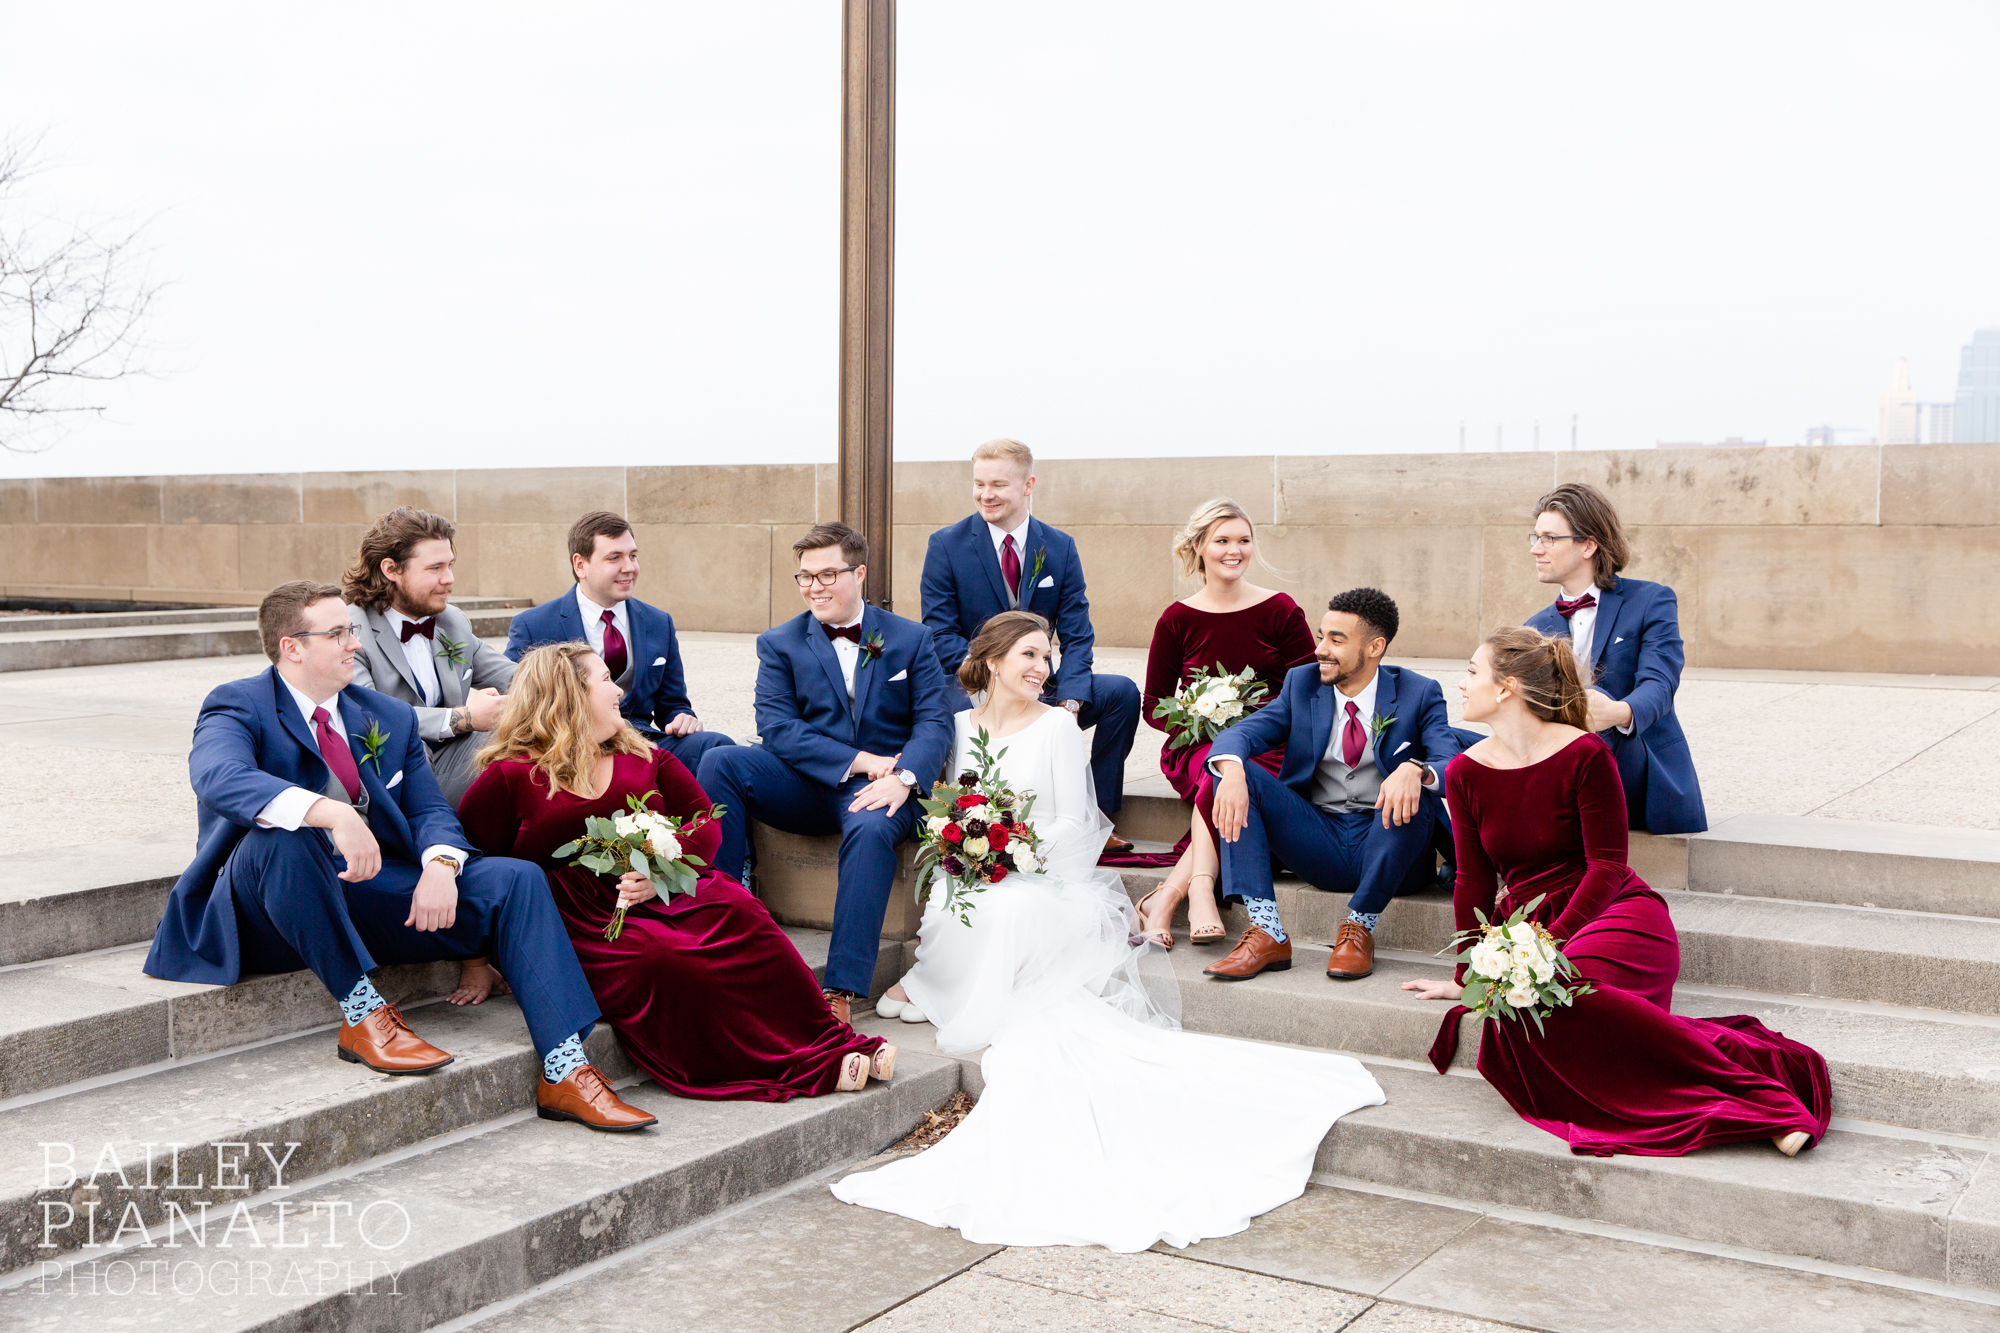 How to decide if you want a first look at your wedding